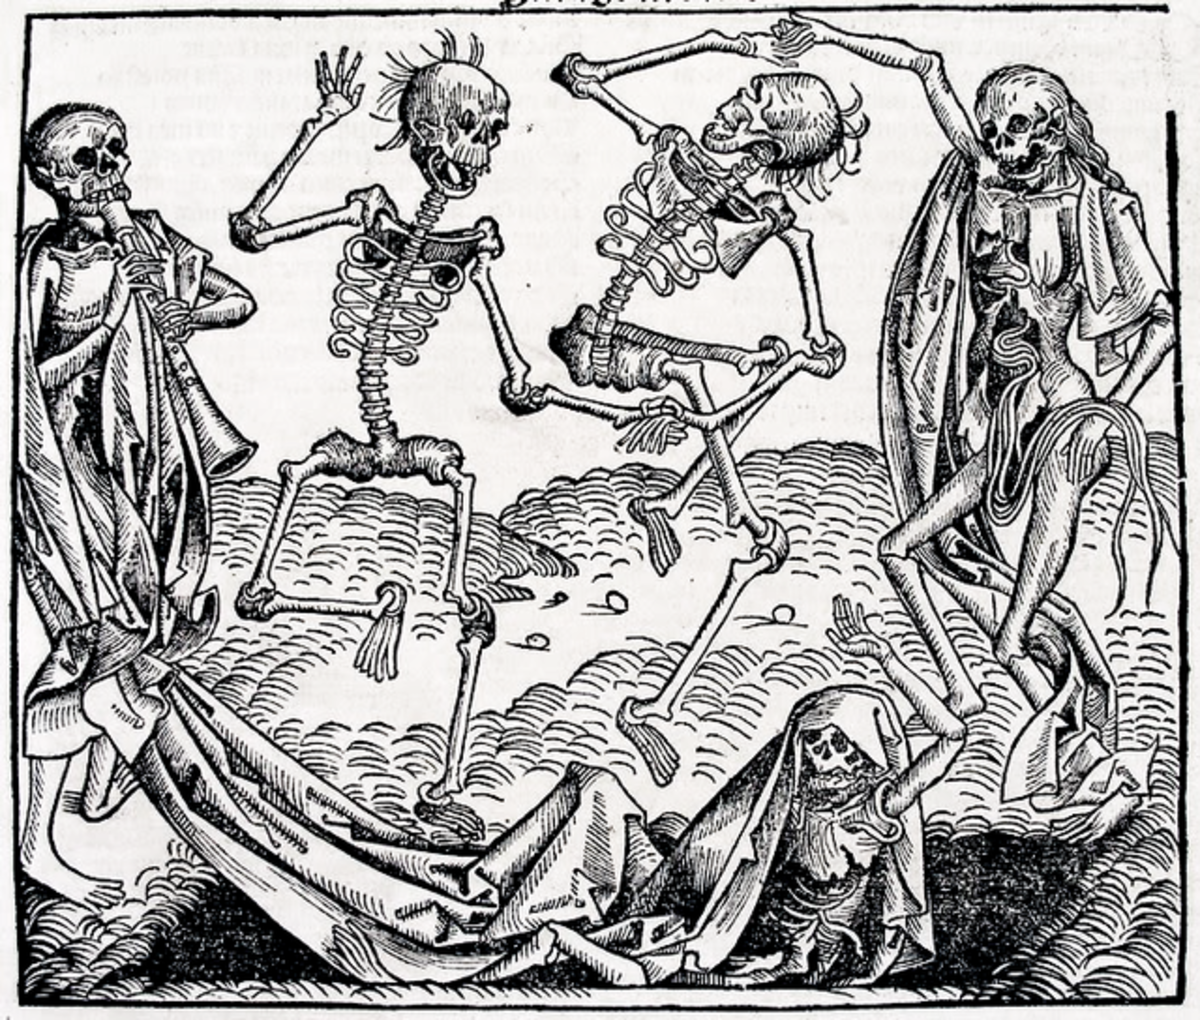 This image of the Dance of Death (by Michael Wolgemeut) was published in Hartman Schedel's Chronicle of the World (Nuremberg, 1493).